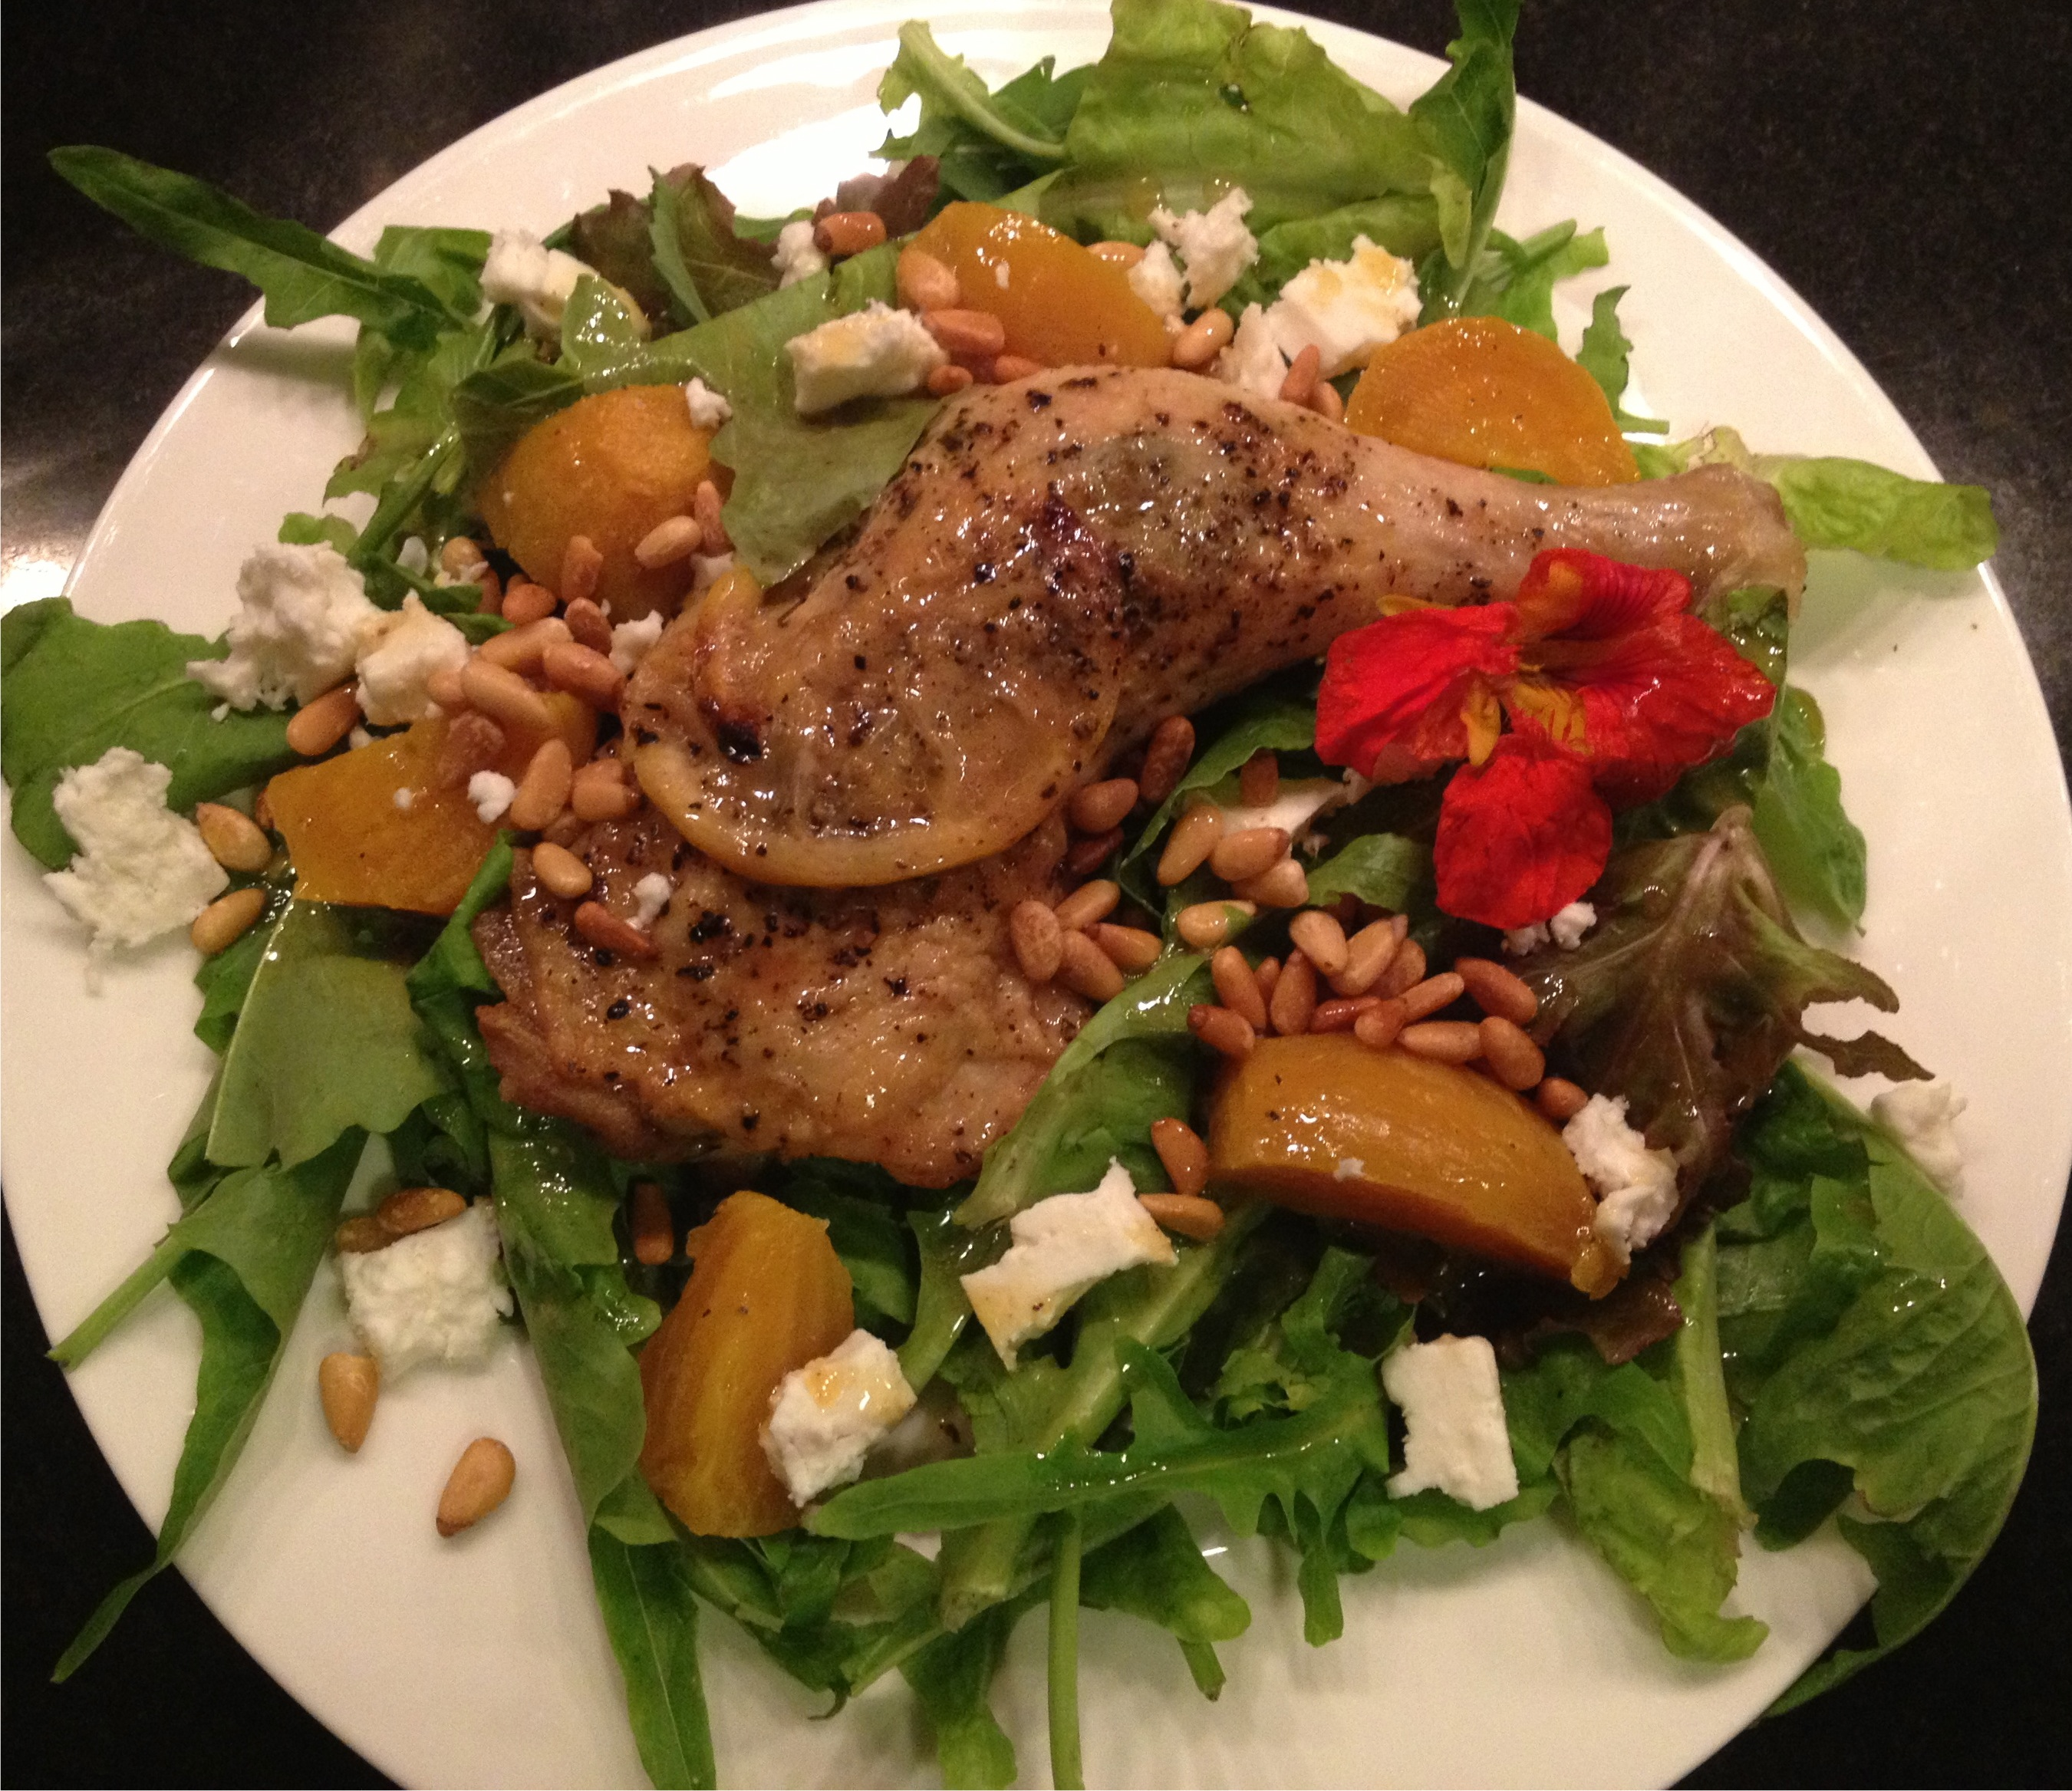 Dinner salad with roast chicken leg, roasted yellow beets, feta cheese and toasted pine nuts on a white Wedgewood plate, overhead shot.